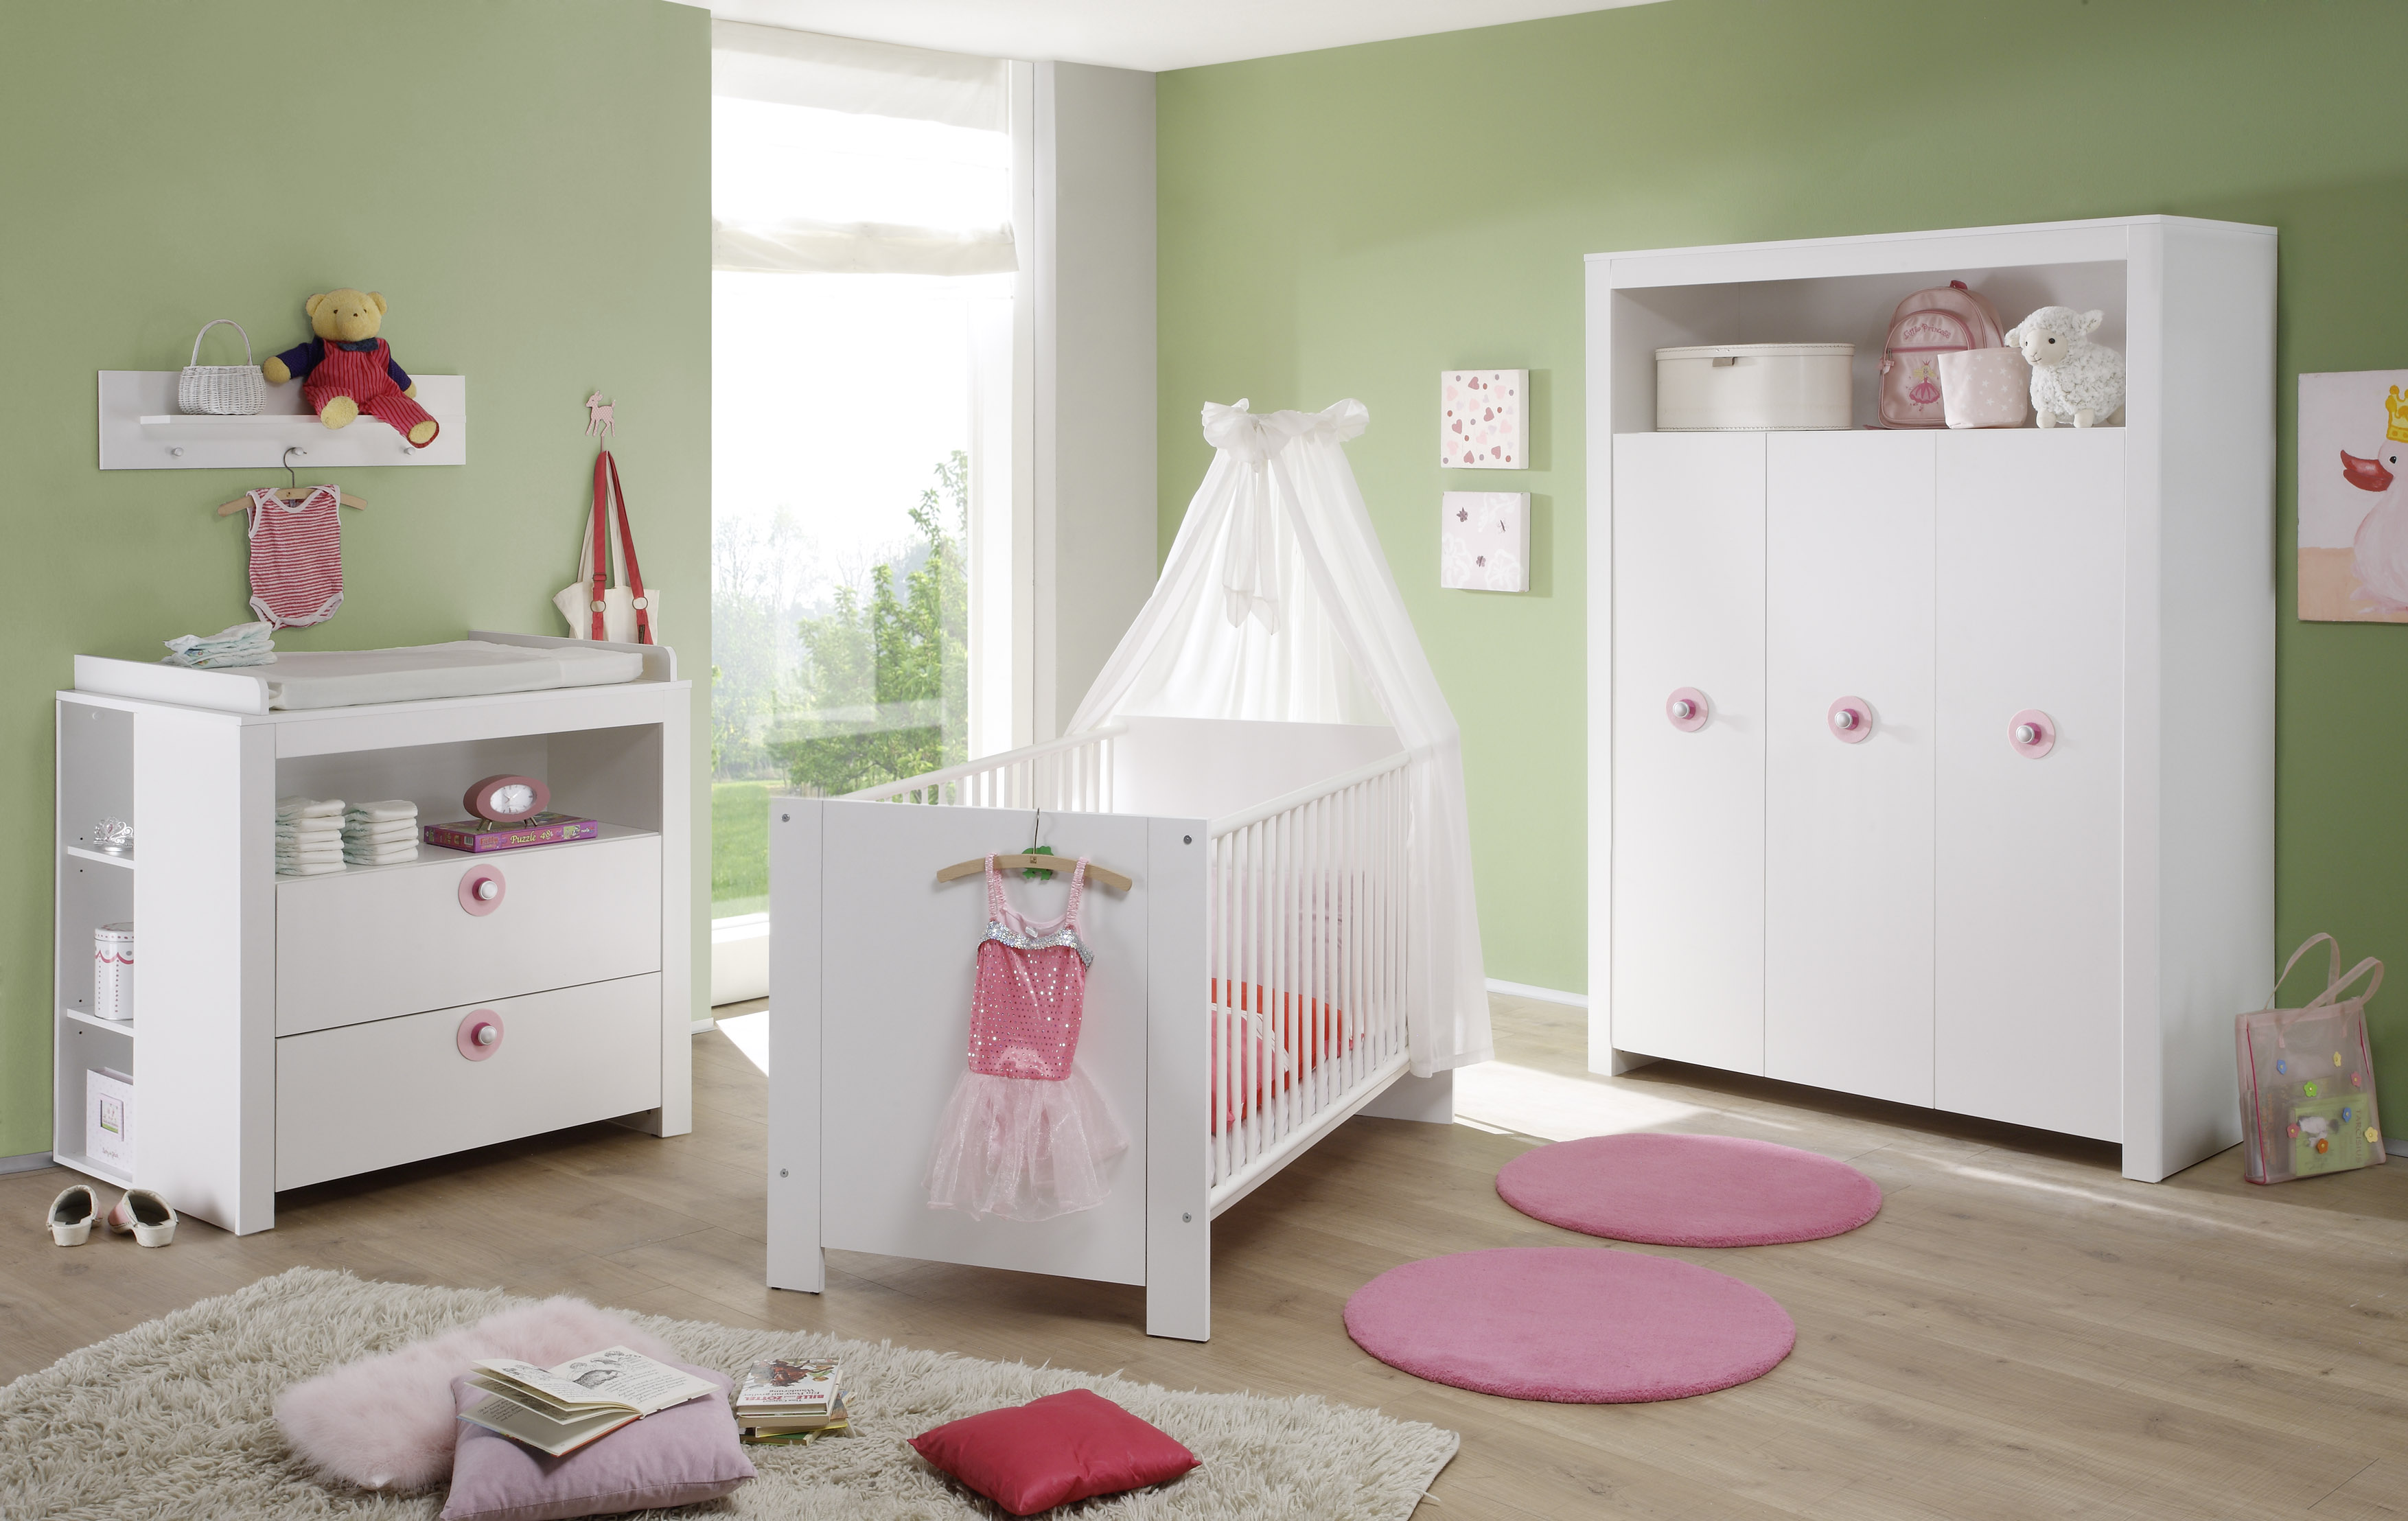 babyzimmerm bel olivia trendteam ros violett. Black Bedroom Furniture Sets. Home Design Ideas